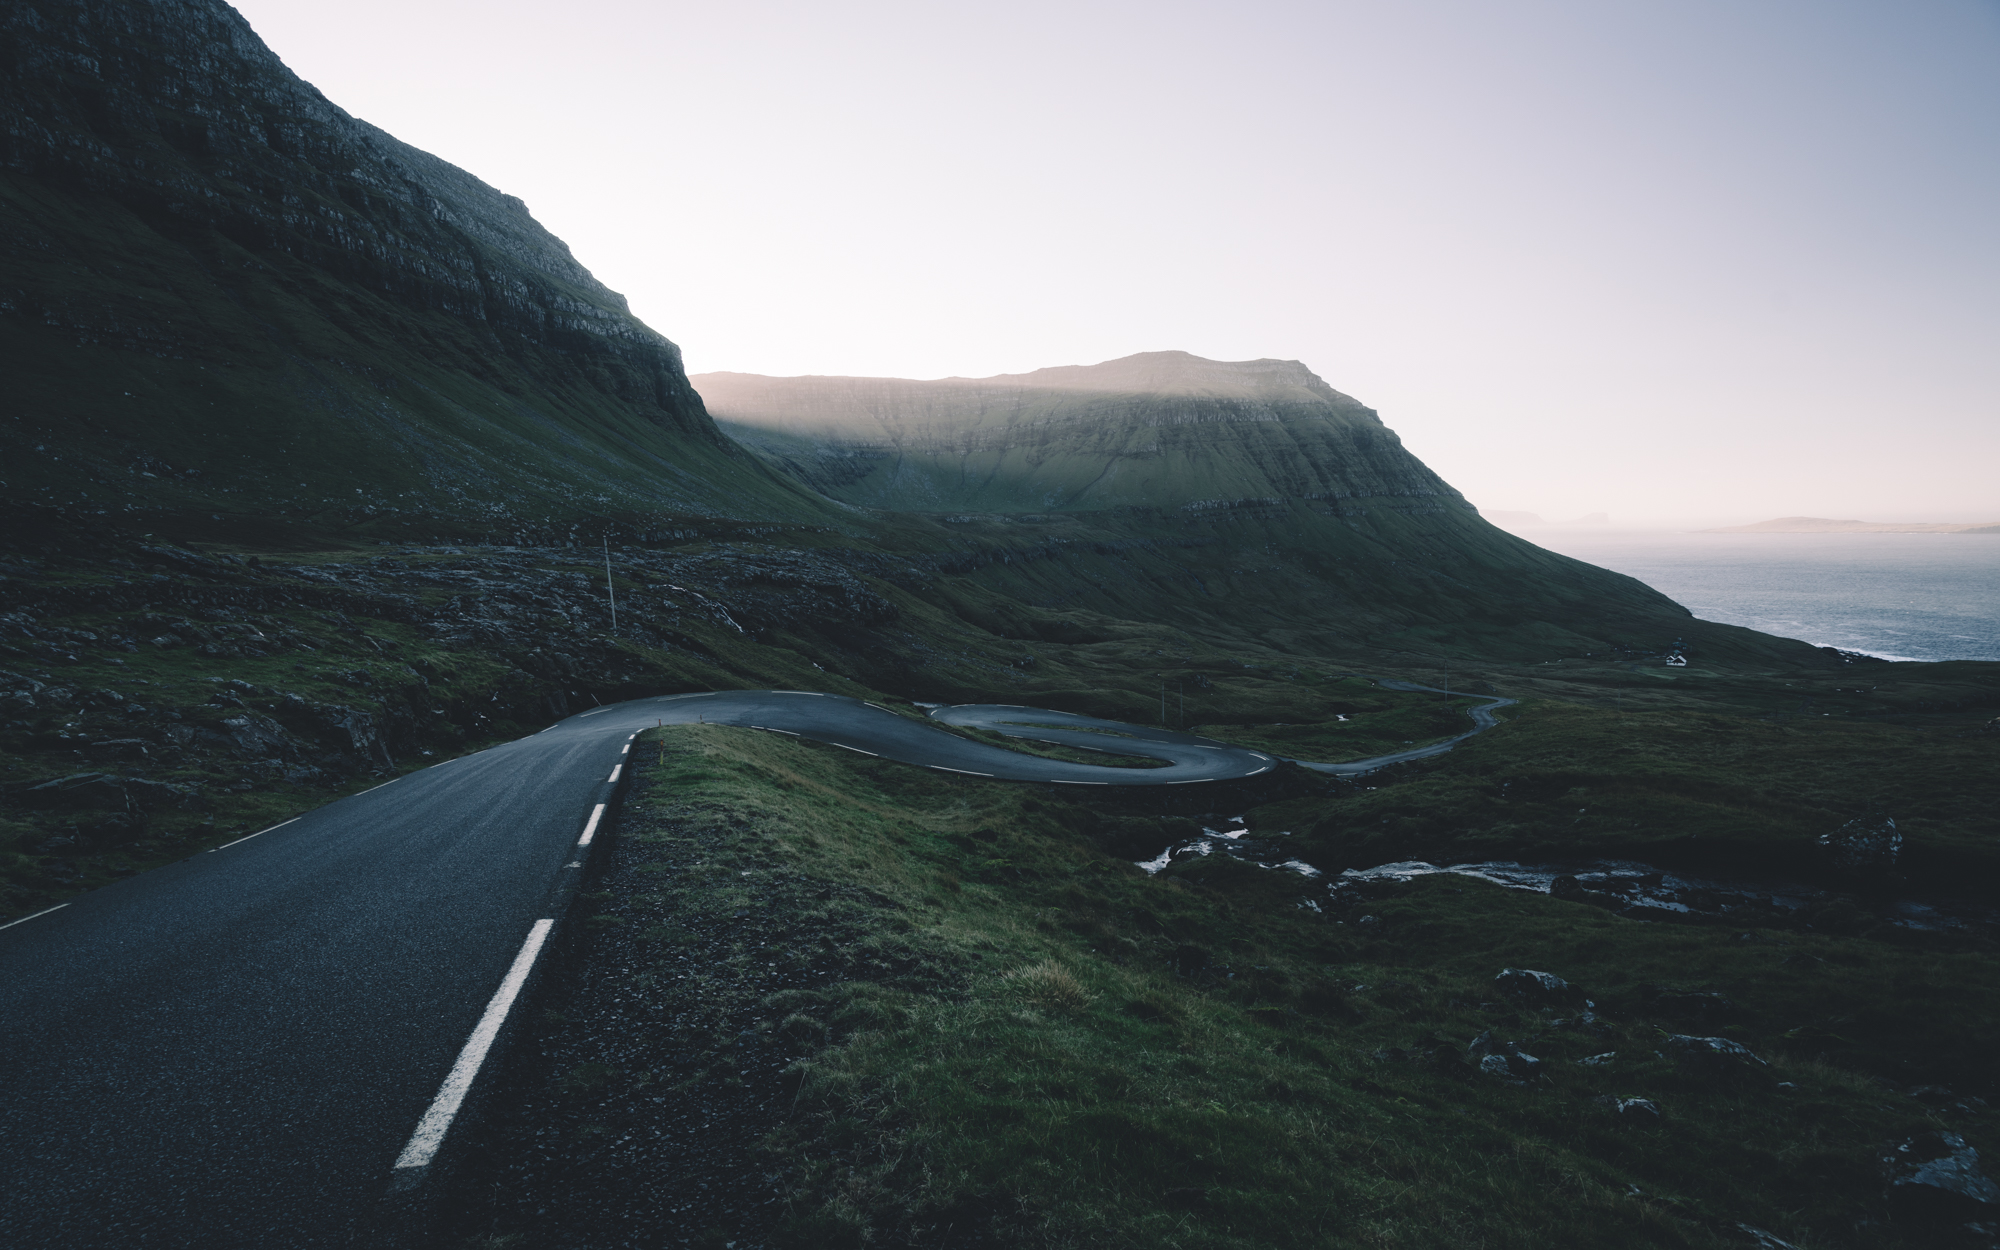 faroe-islands-99.jpg